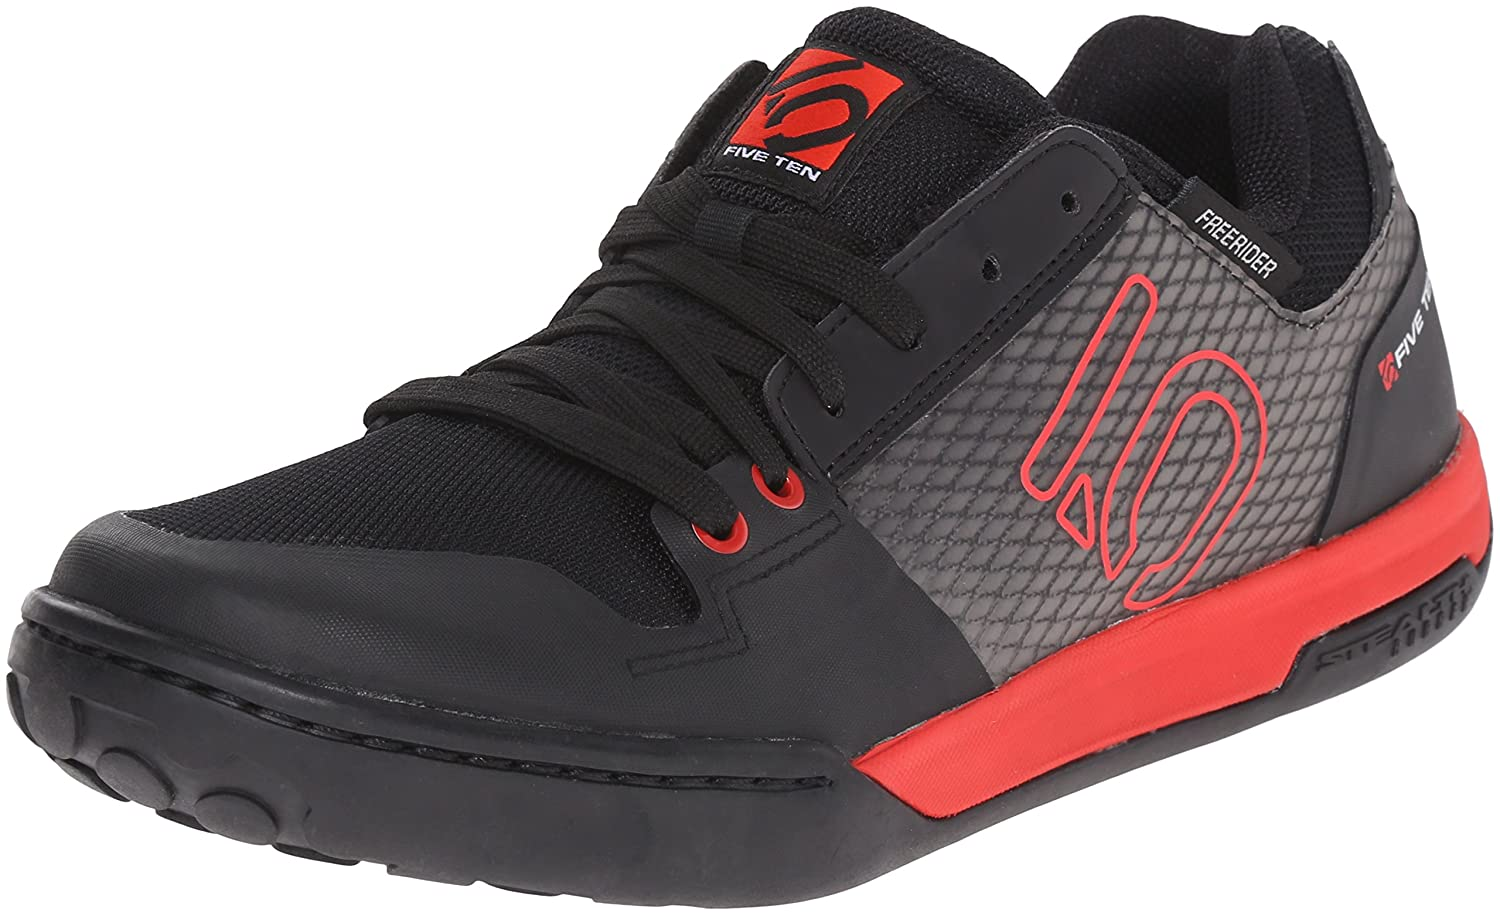 Five Ten Freerider Contact Sportschuhe, schwarz rot, Gr. 42 1 2